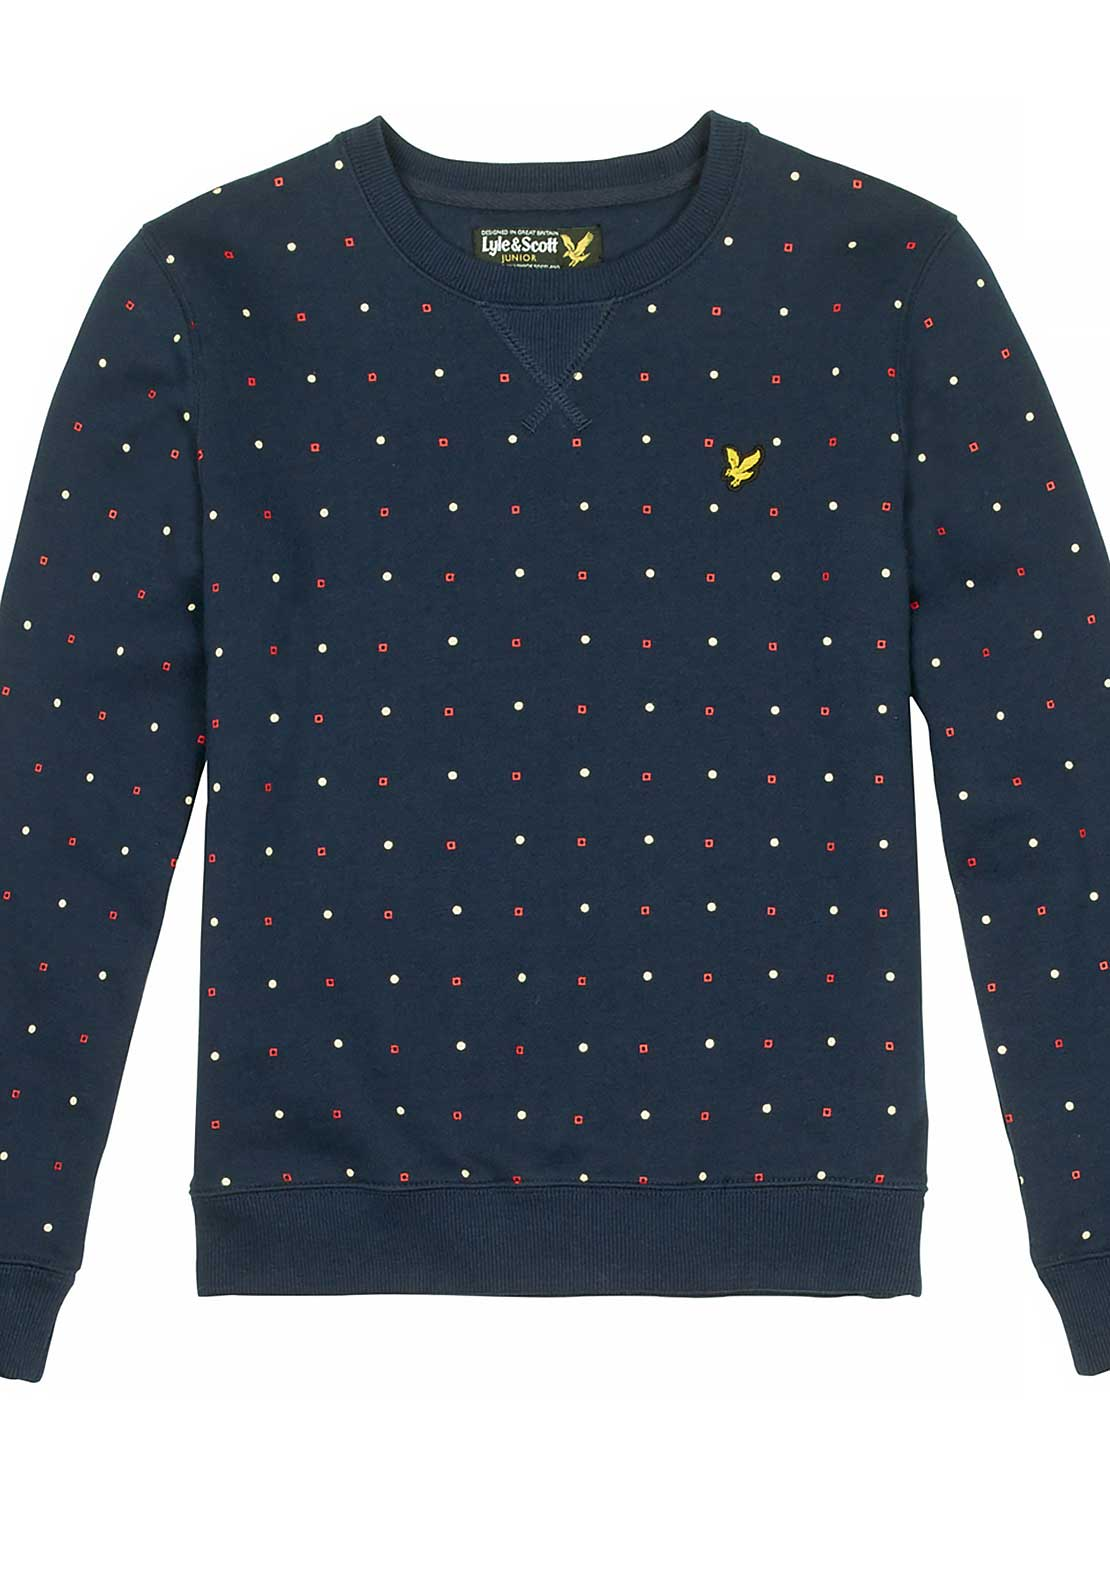 Lyle & Scott Boys Geo Print Sweatshirt Jumper, Navy Blazer